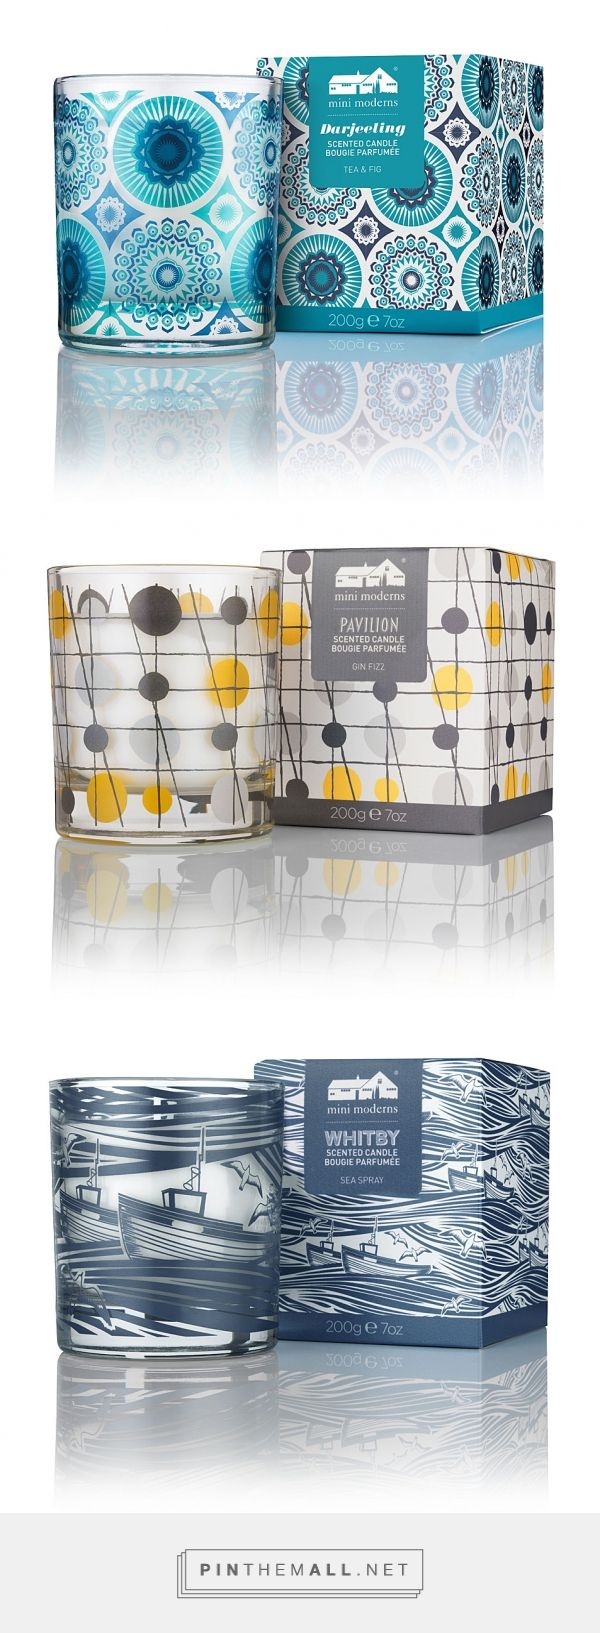 Mini Moderns Home Fragrance - Packaging of the World - Creative Package Design…